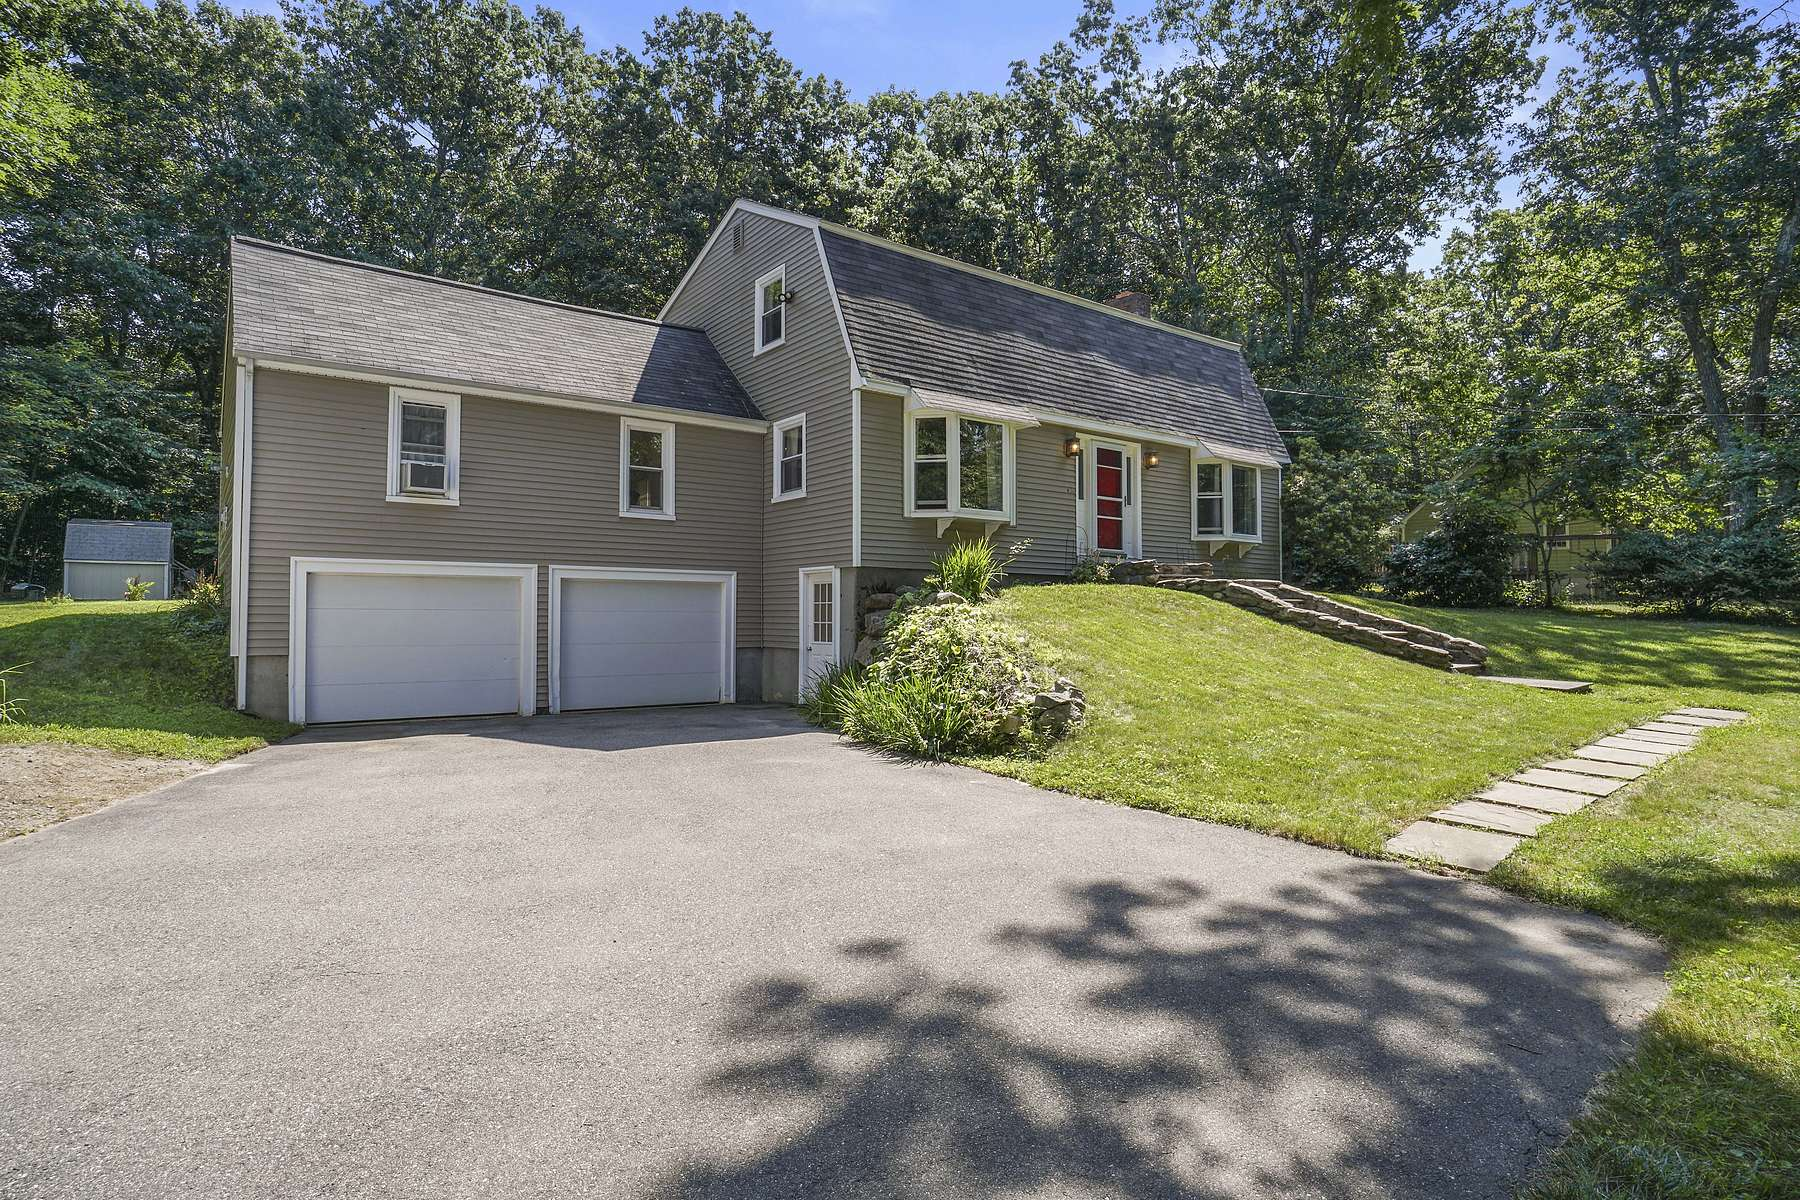 Single Family Homes for Active at Gambrel Style Colonial 71 Thomas St Ashland, Massachusetts 01721 United States